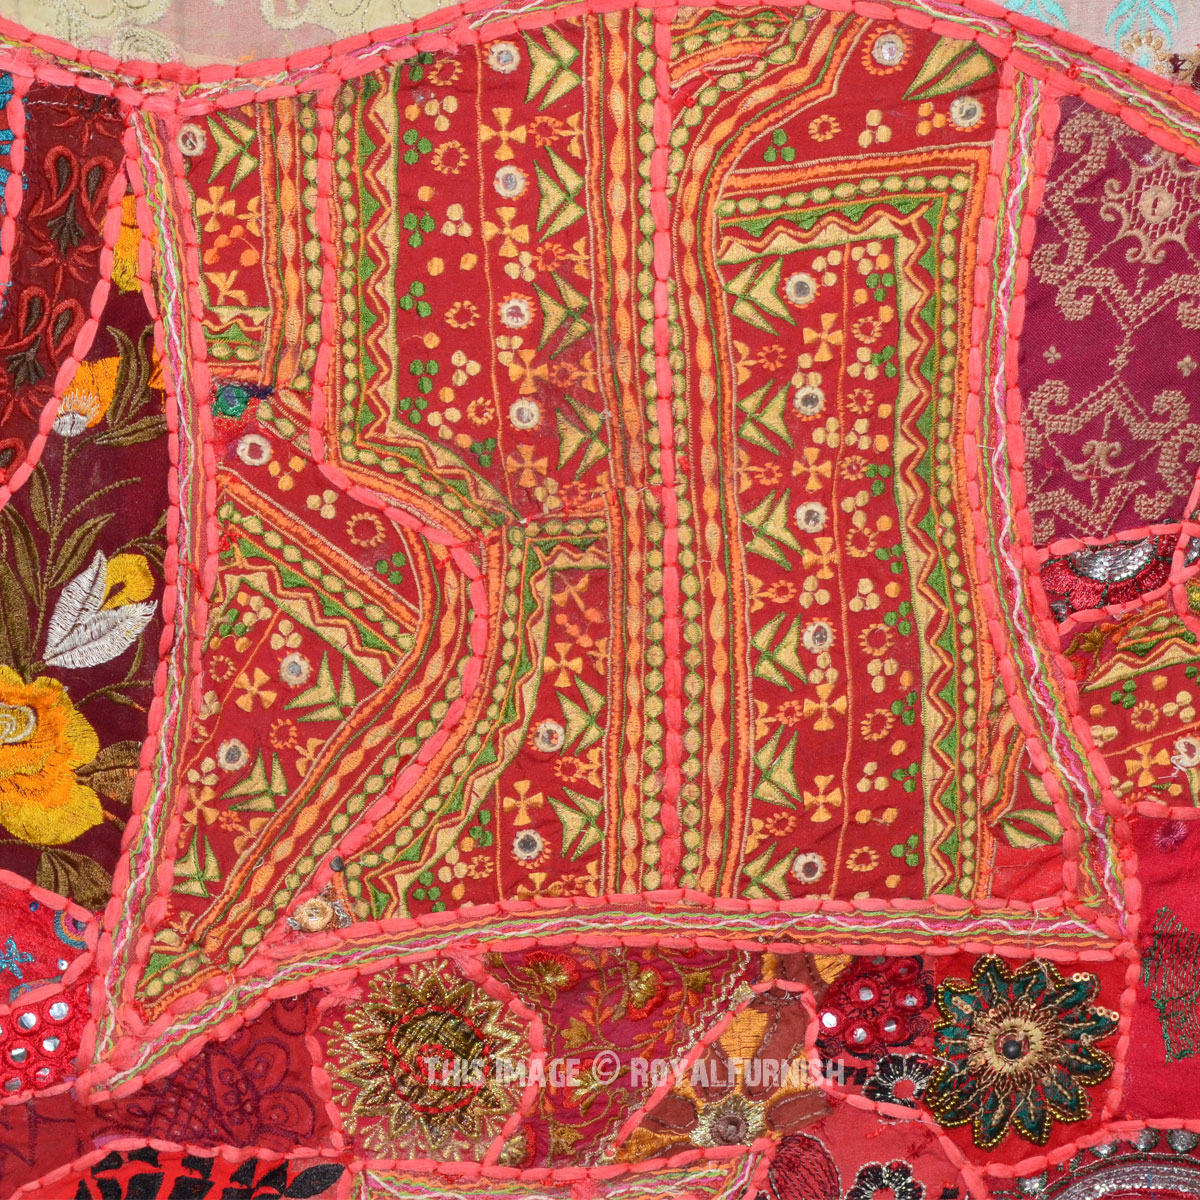 Red Big Size Square Multi Patch Indian Elephant Tapestry